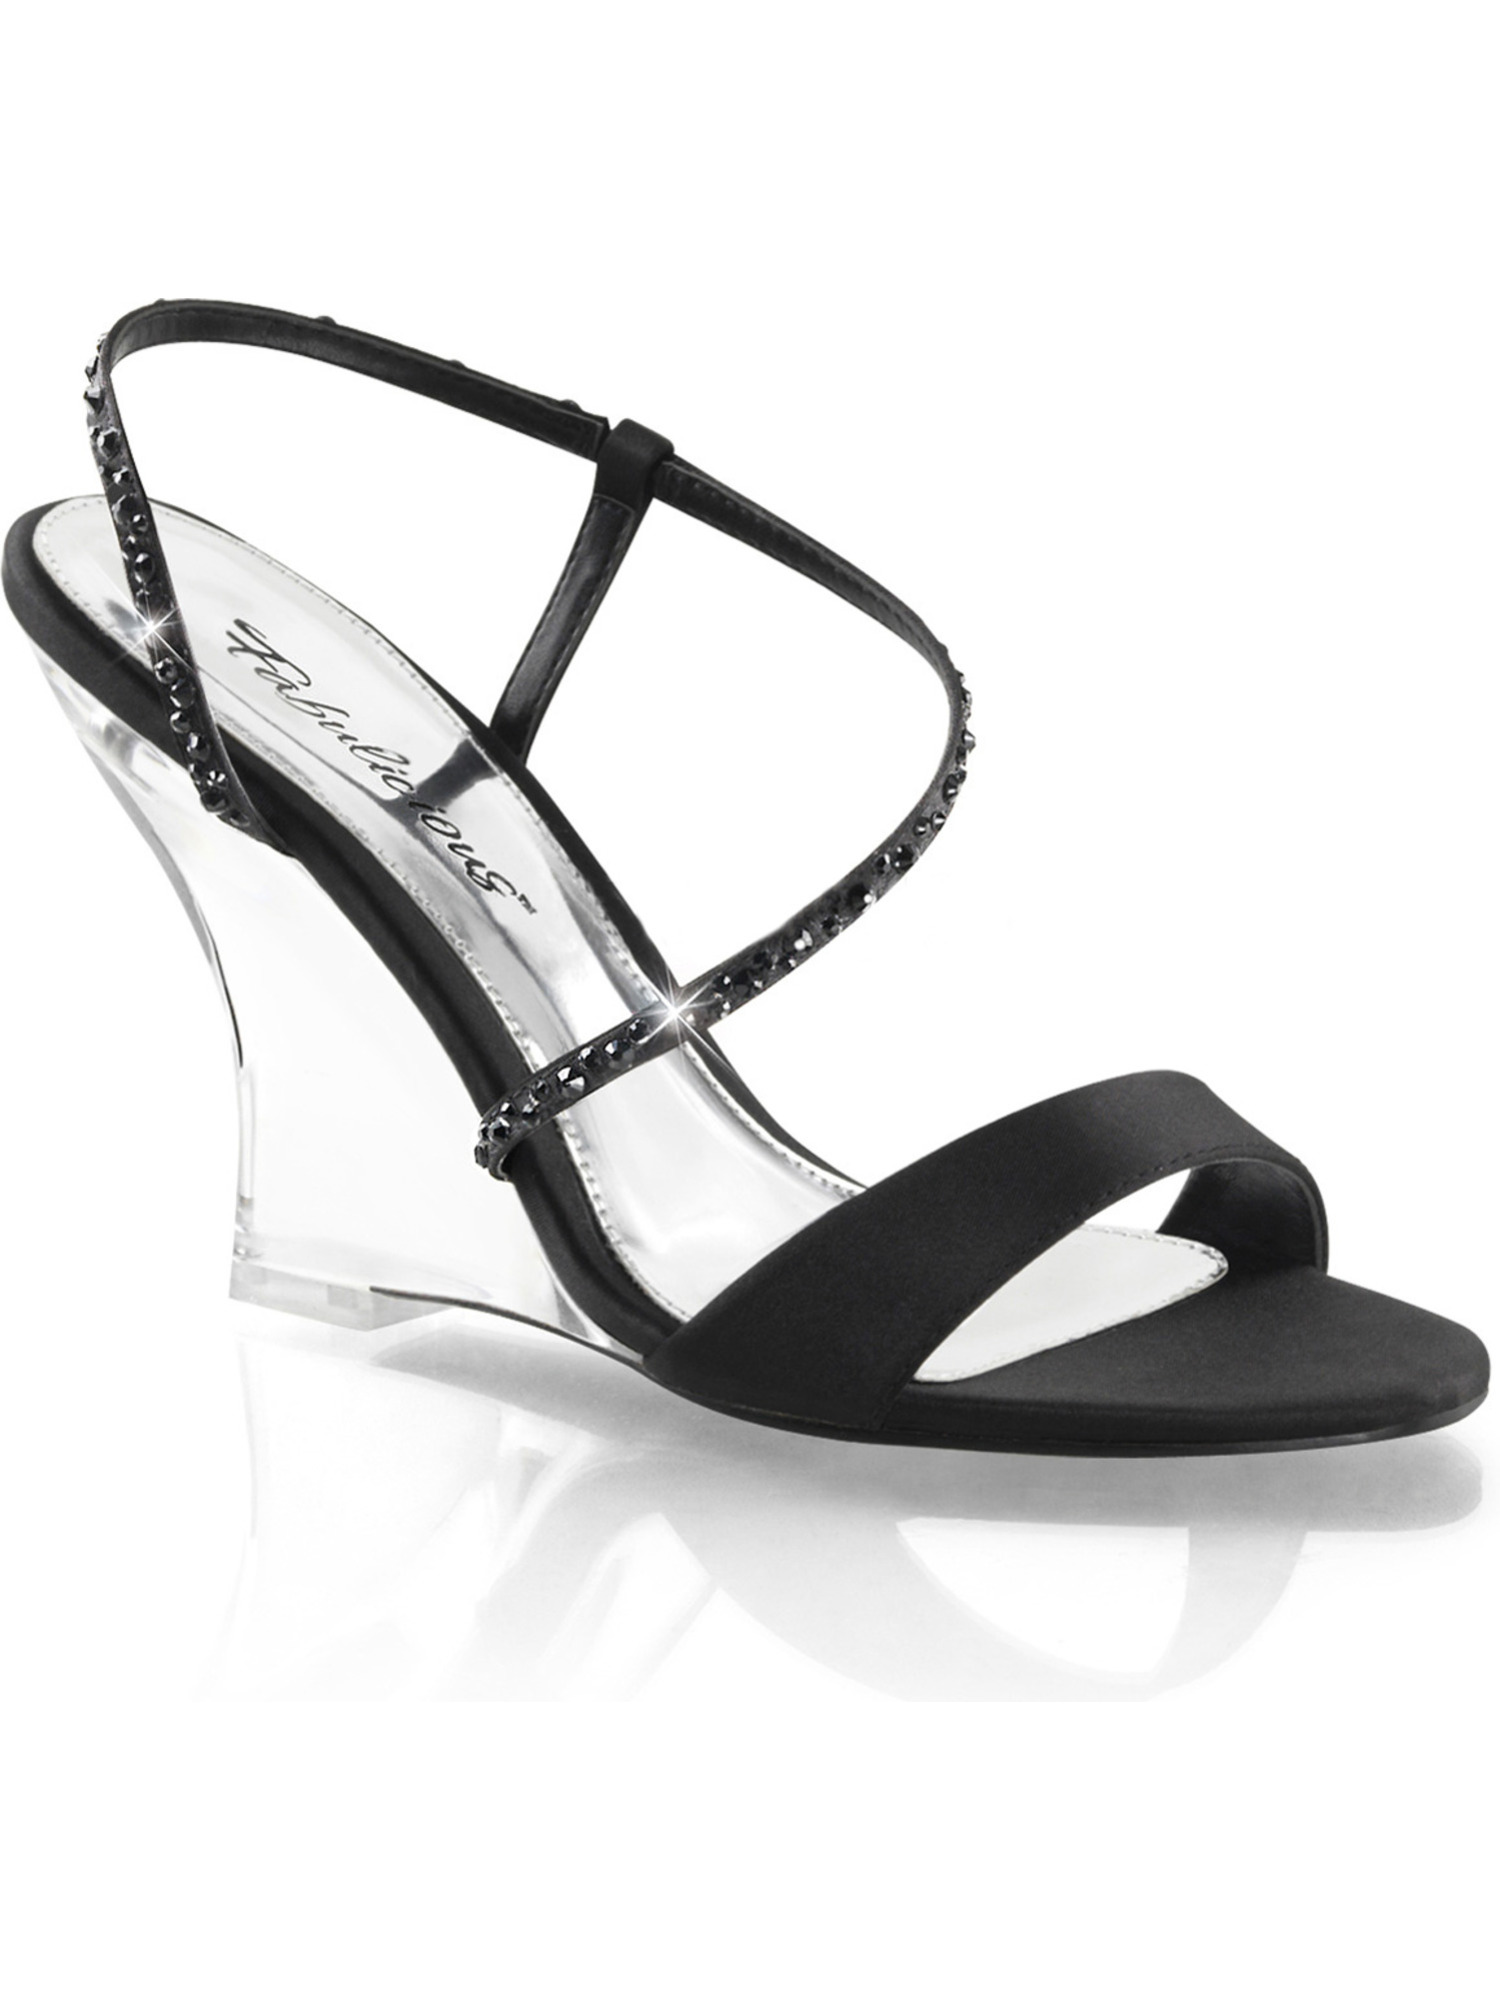 Women Black Satin and RHinestone Wedge Sandals Shoes with 4'' Clear Wedge Heels